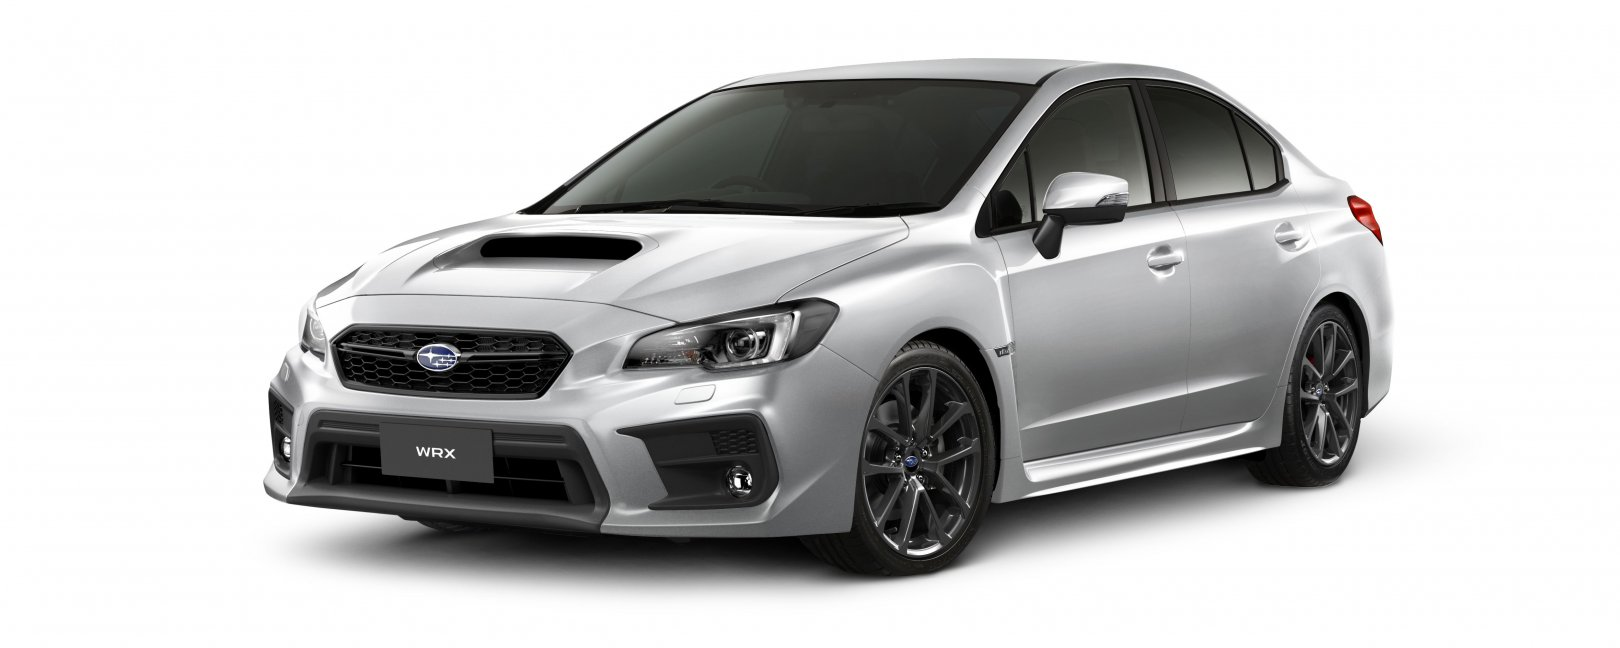 2020 WRX in ice silver